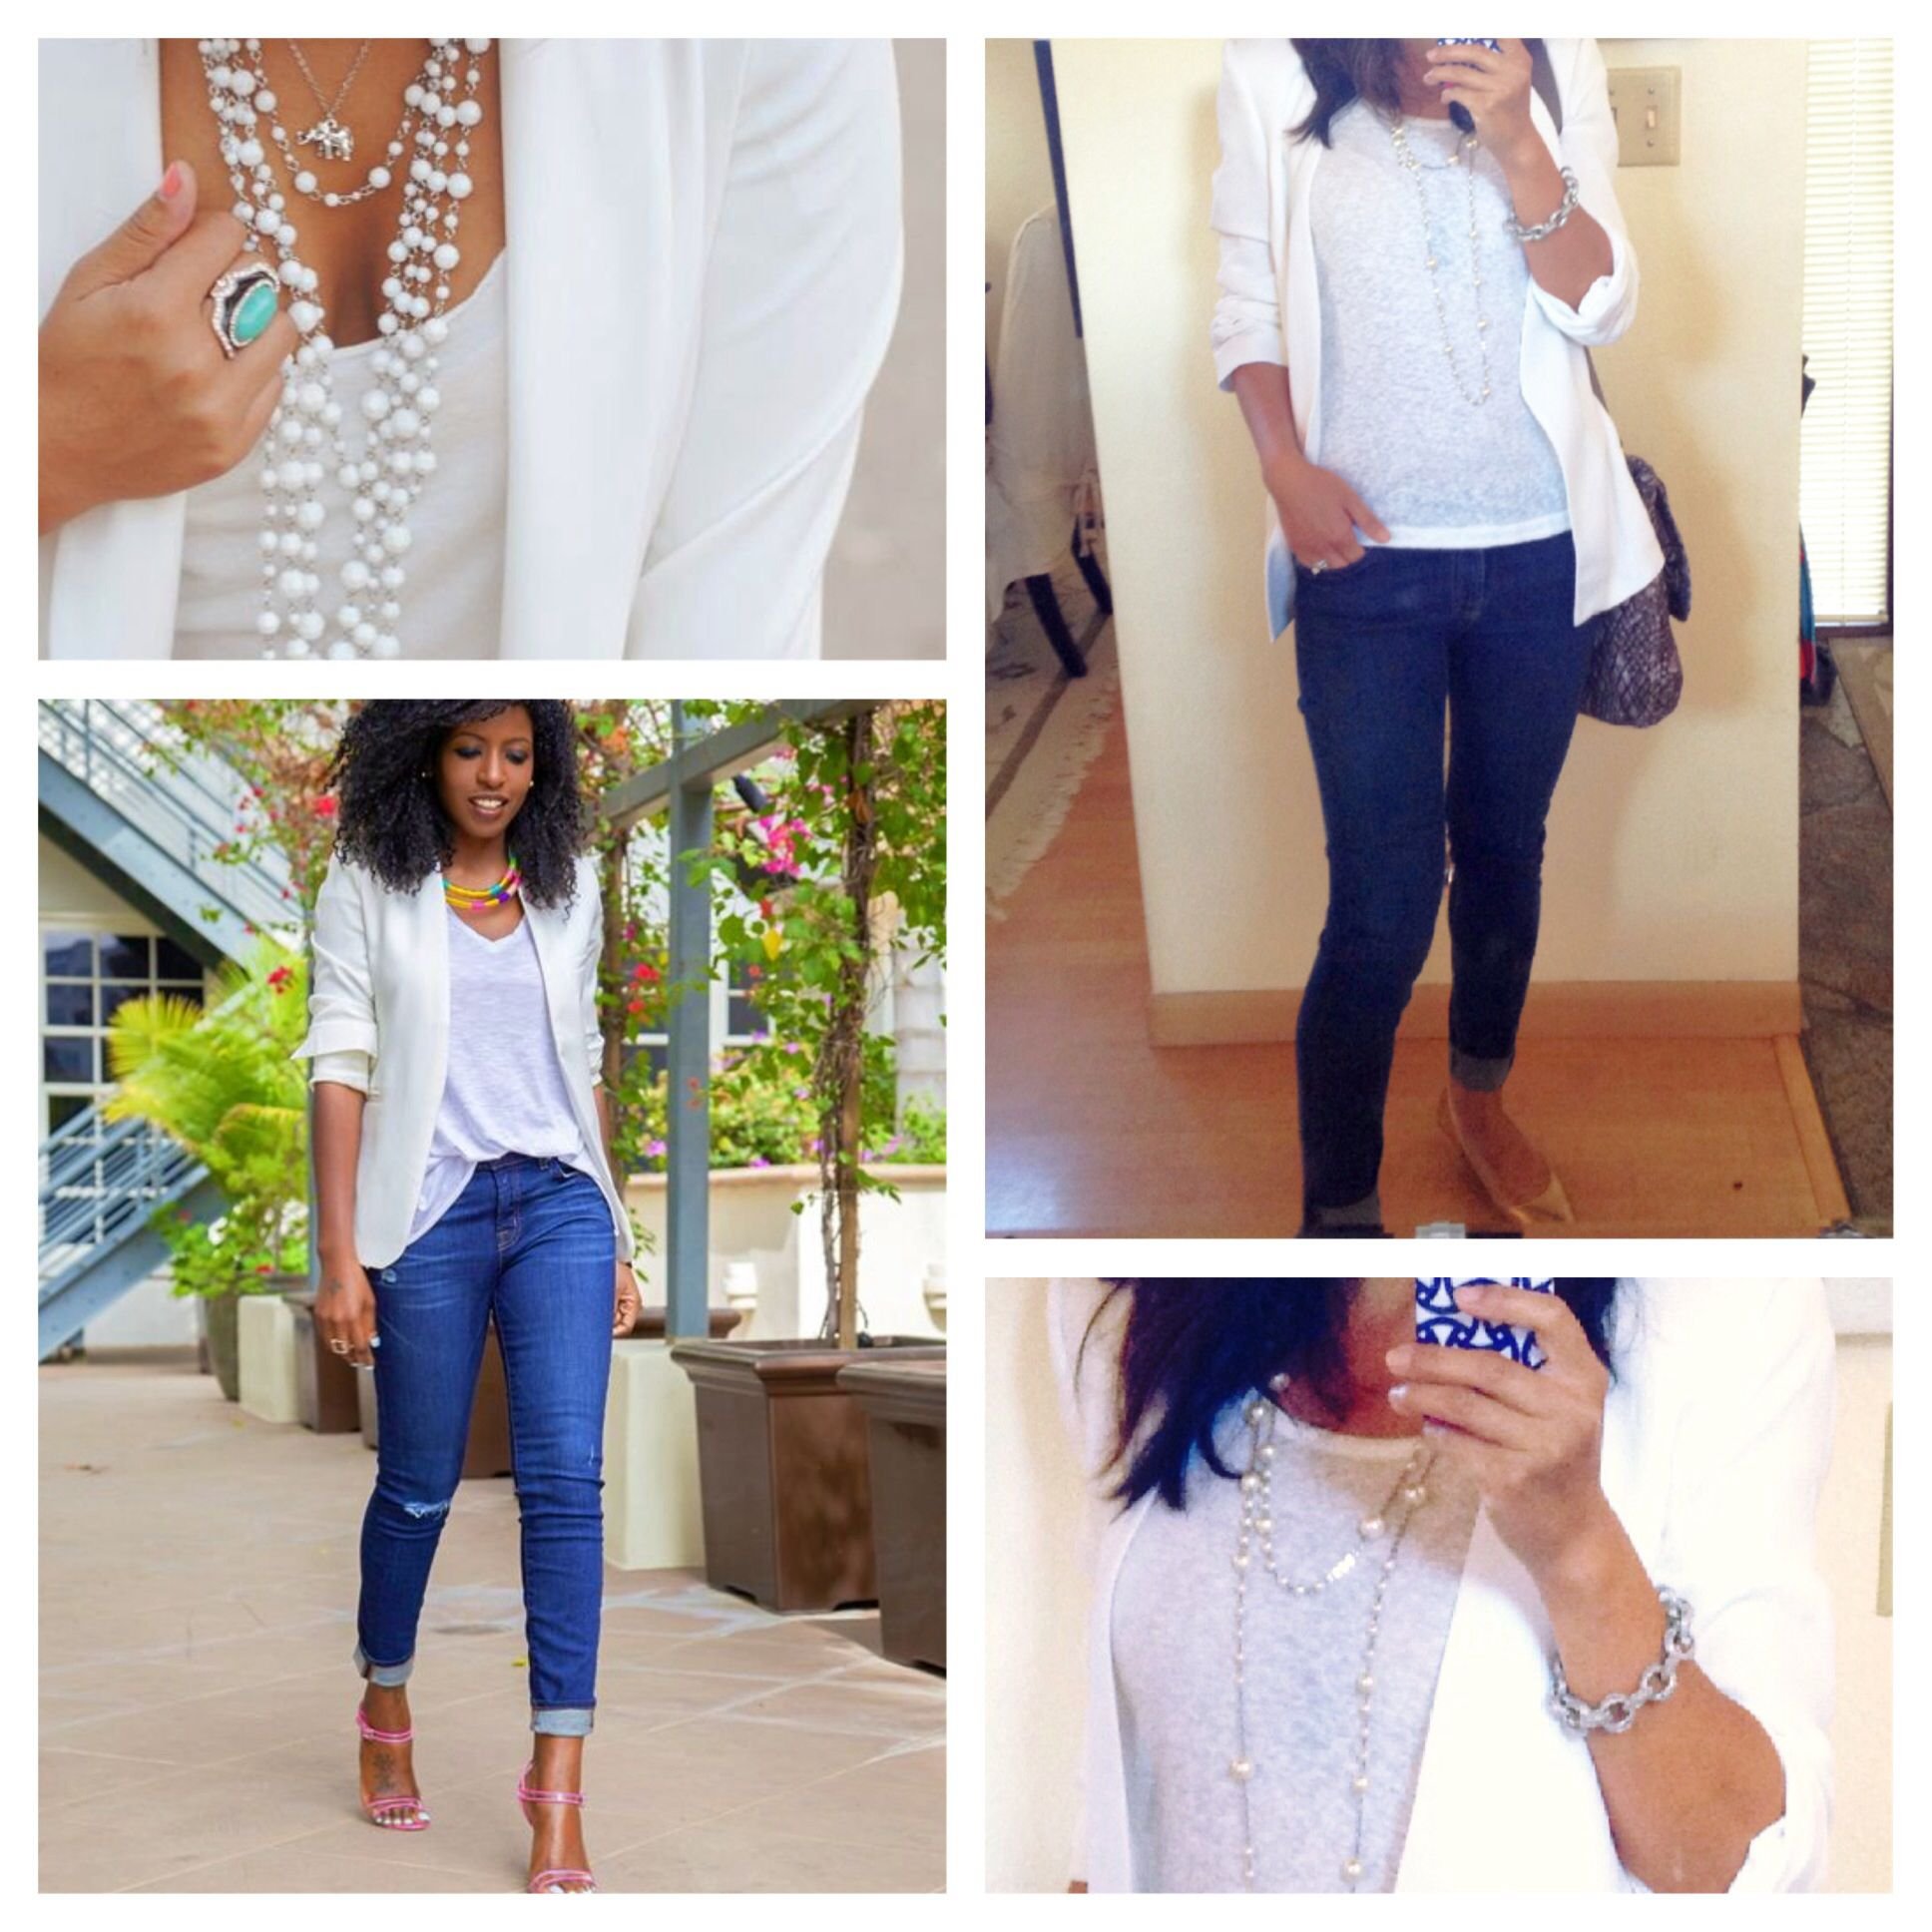 Inspired by Pinterest. Blazer by Zara, t shirt by American Eagle, jeans by Seven for All Mankind.